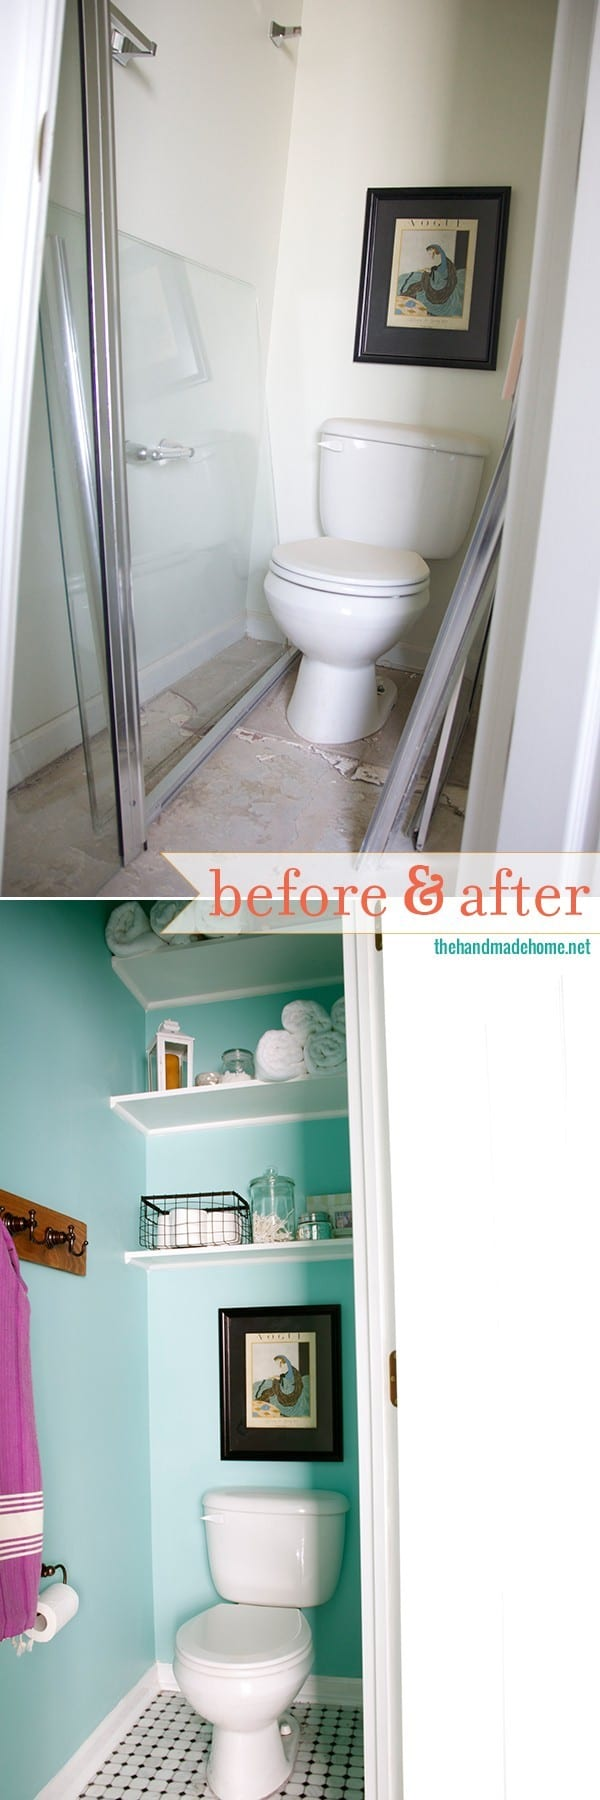 before_and_after_bathroom_redo